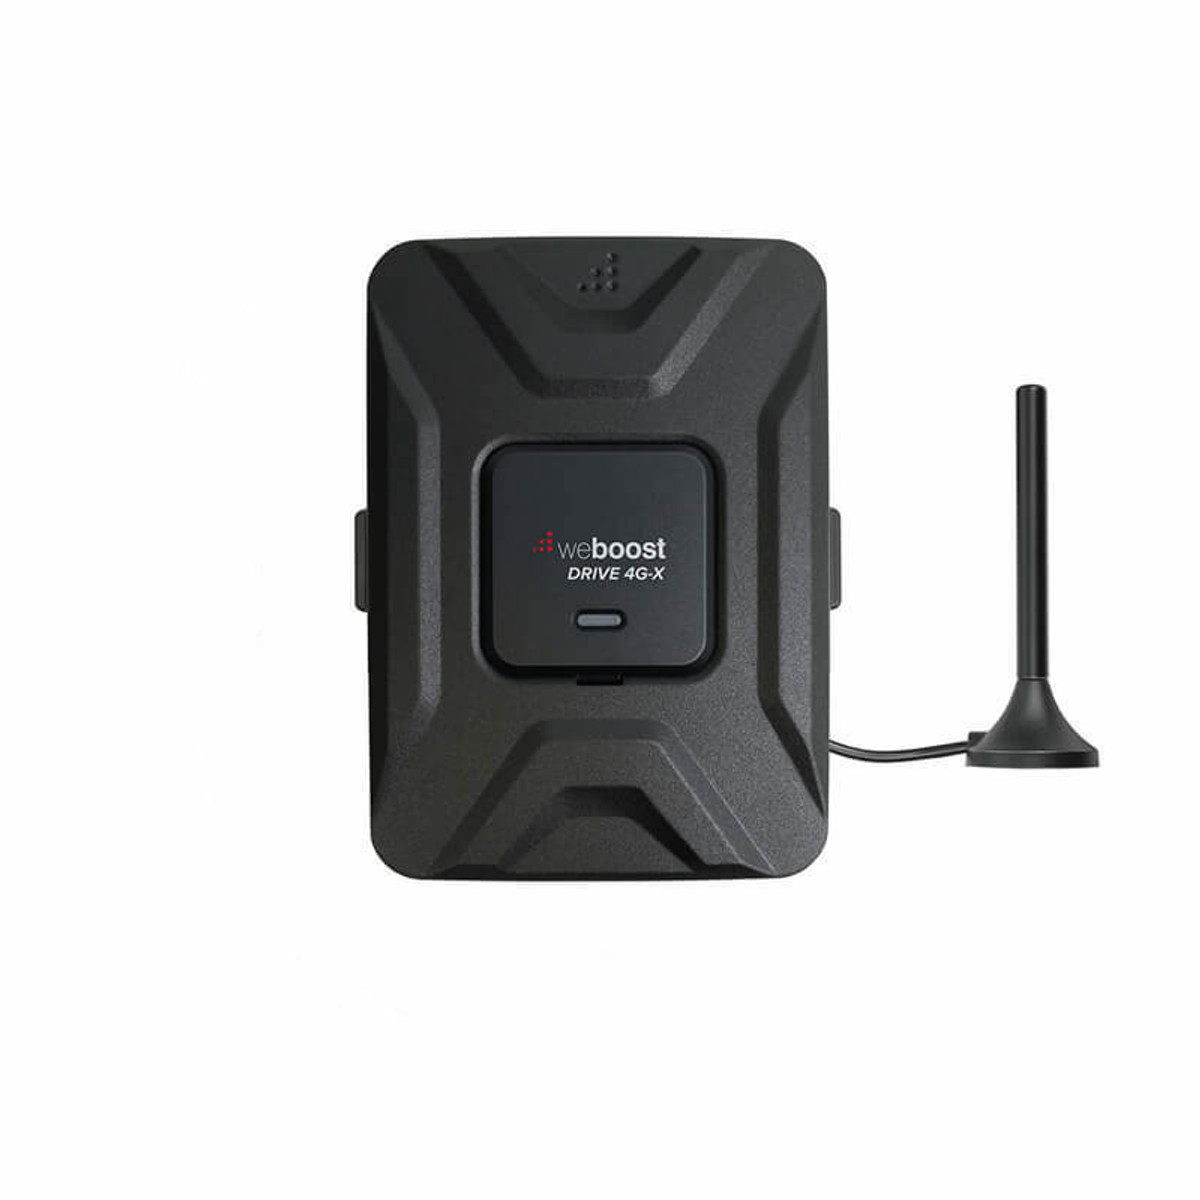 Wilson weBoost Drive 4G-X Cell Phone Signal Booster, Refurbished | 470510R